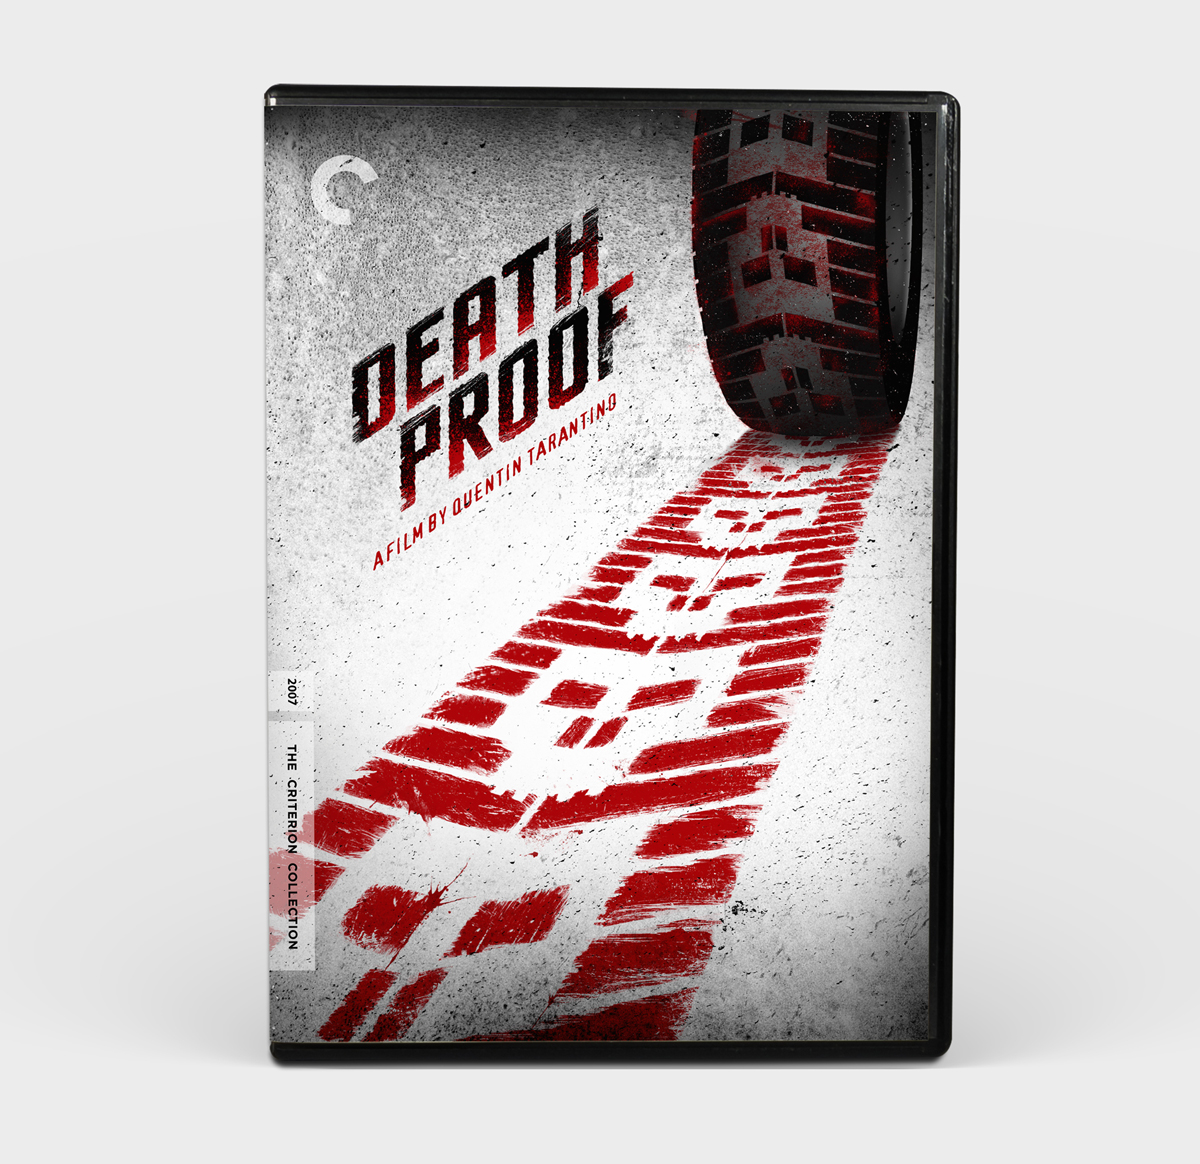 Criterion-Covers-death-proof-front-Thanh-Nguyen-design